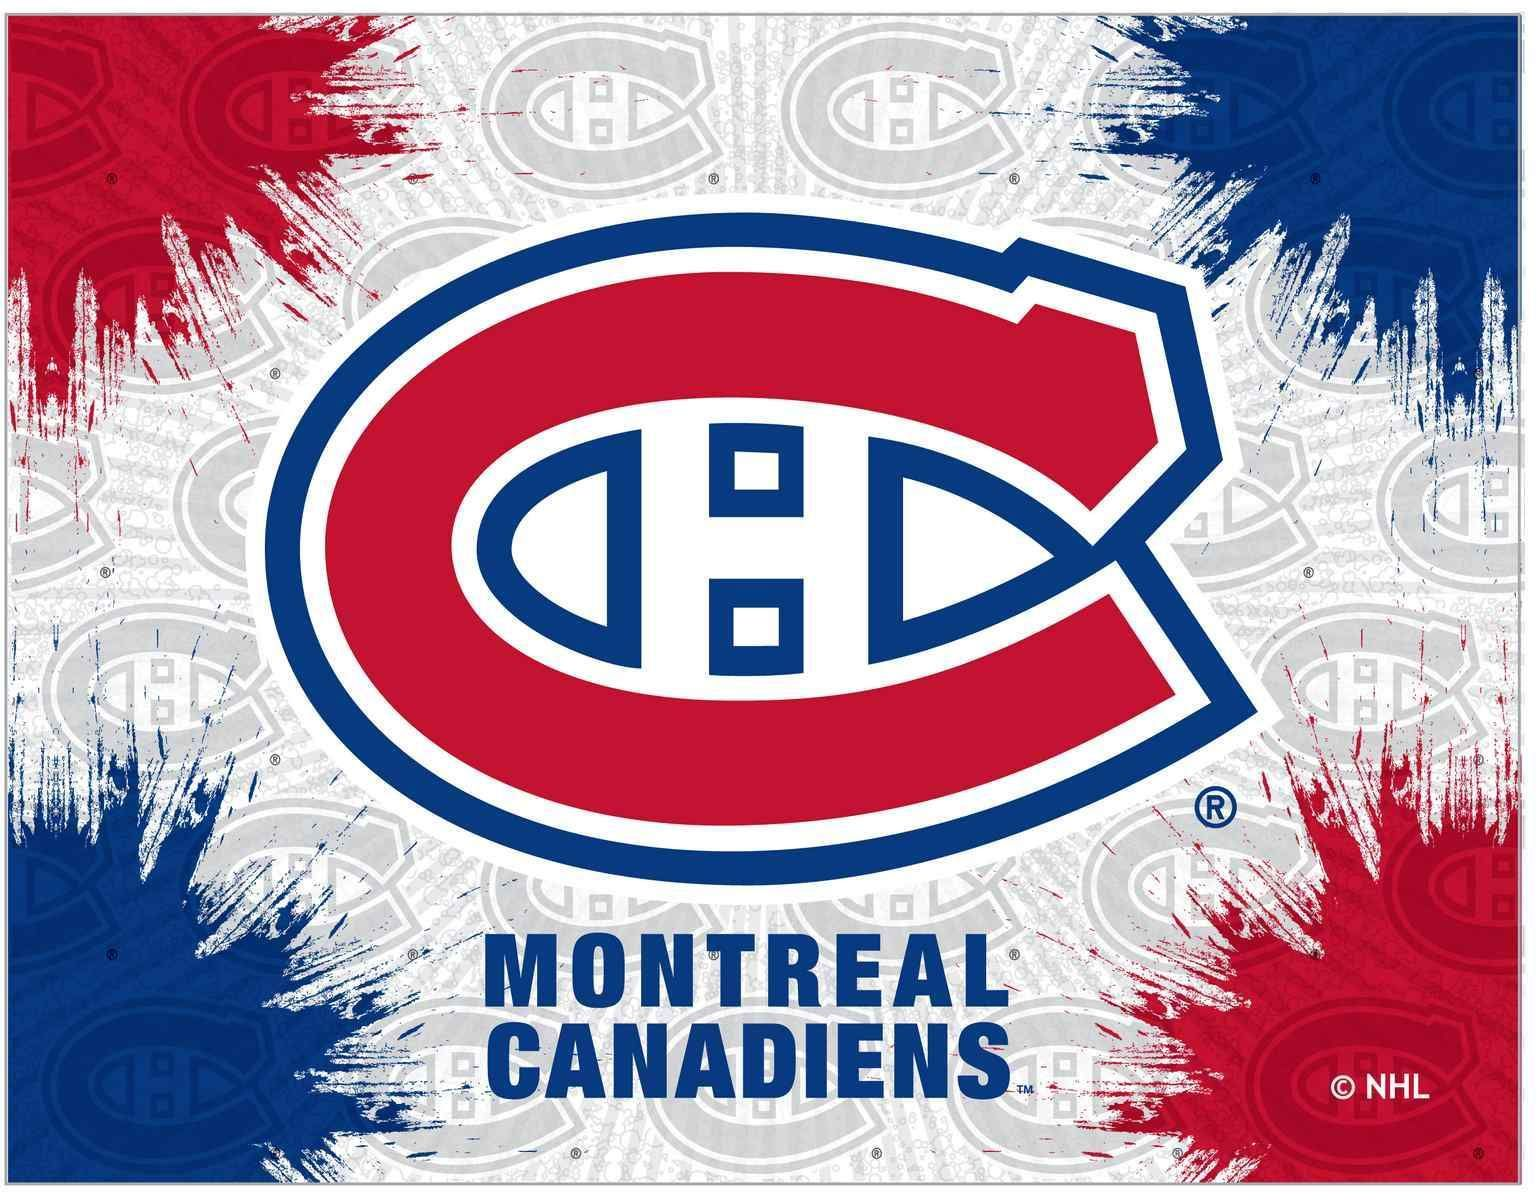 Montreal canadiens hbs gray red hockey wall canvas art picture print